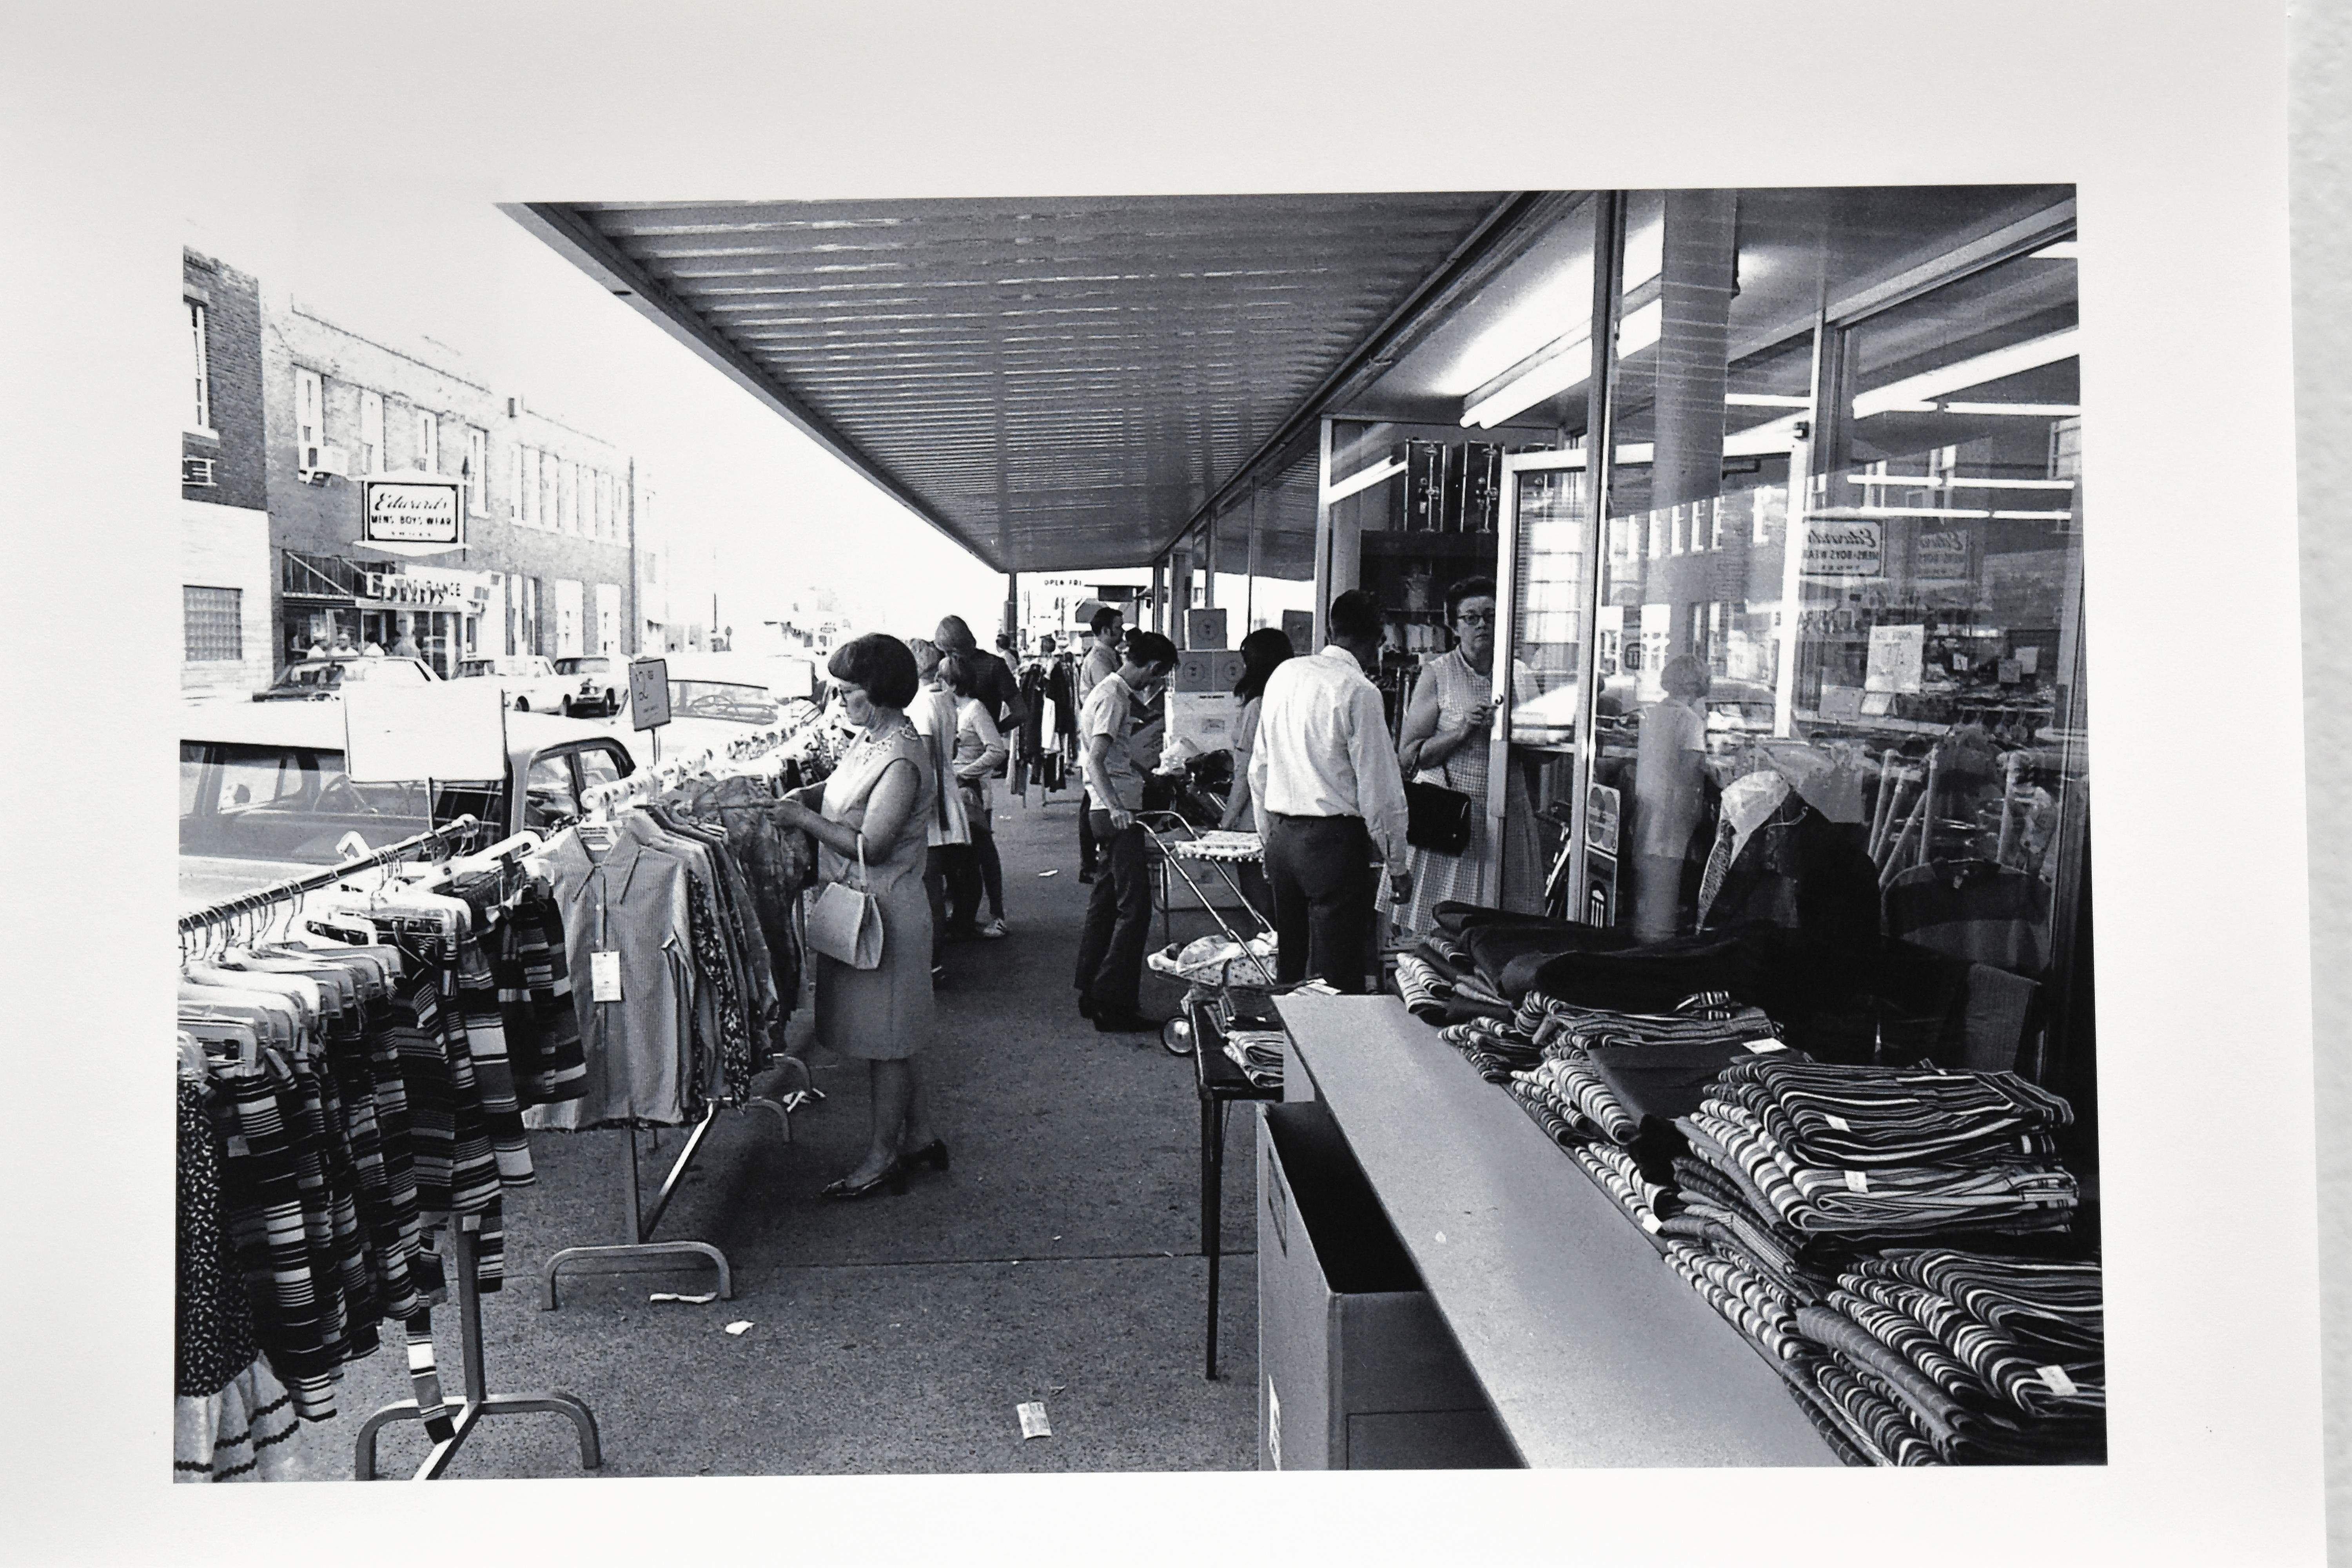 An image of a sidewalk sale in front of the Eldorado Ben Franklin in 1971 taken by Charles Hammond.